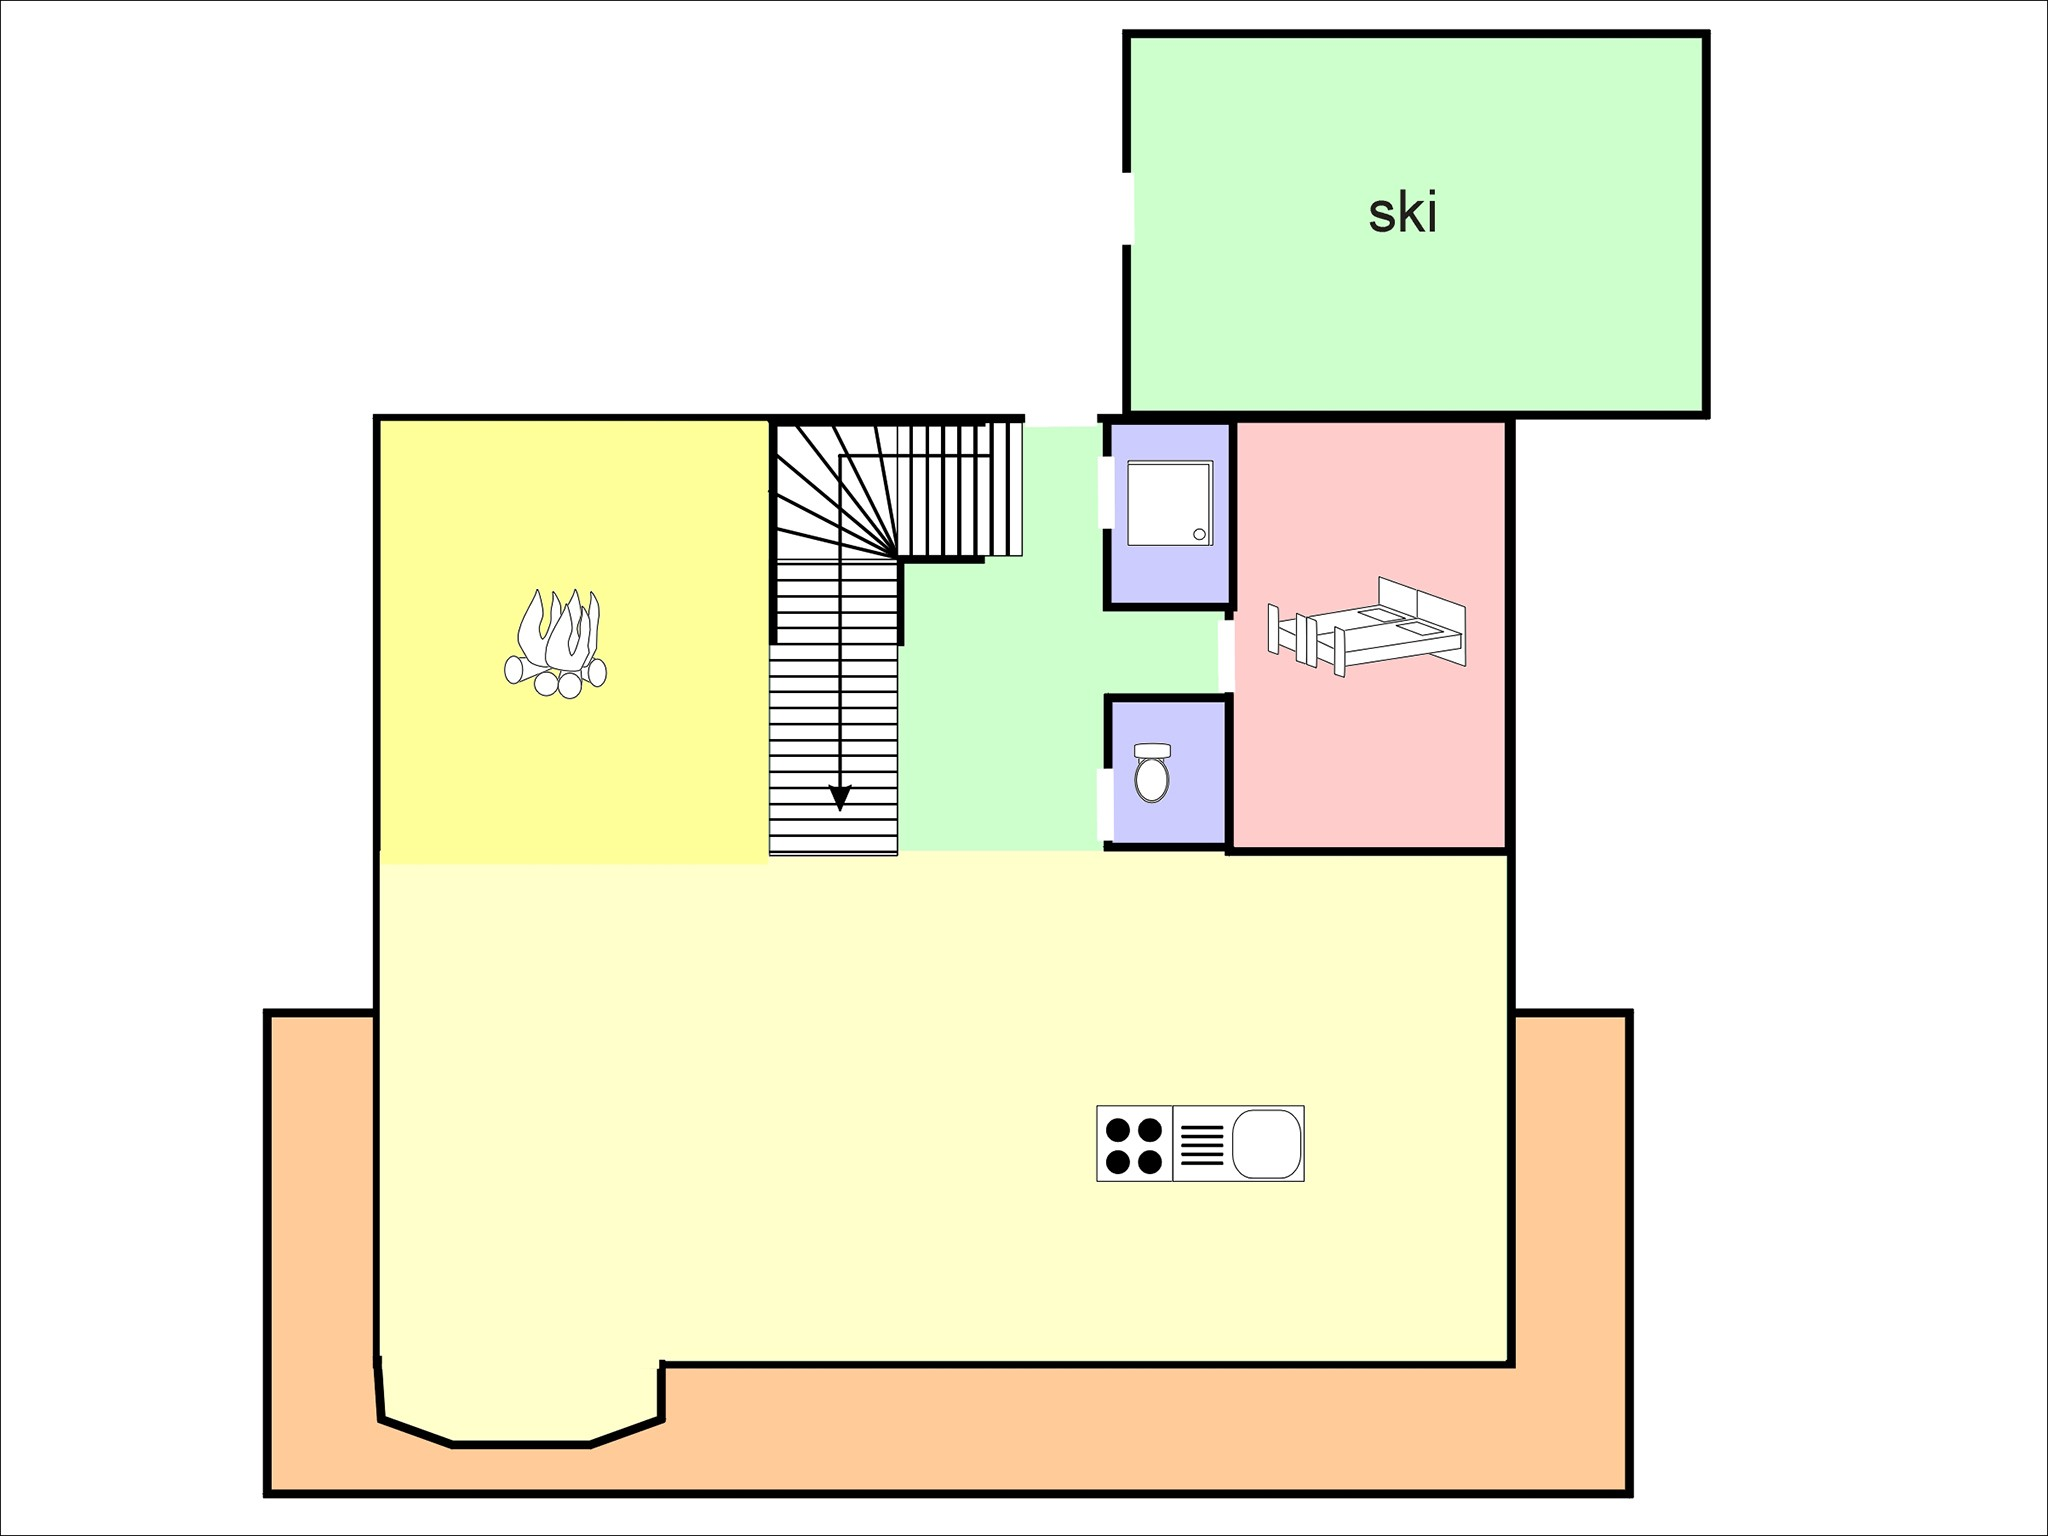 Chalet Châtel CAN01 - floor plan - level 1